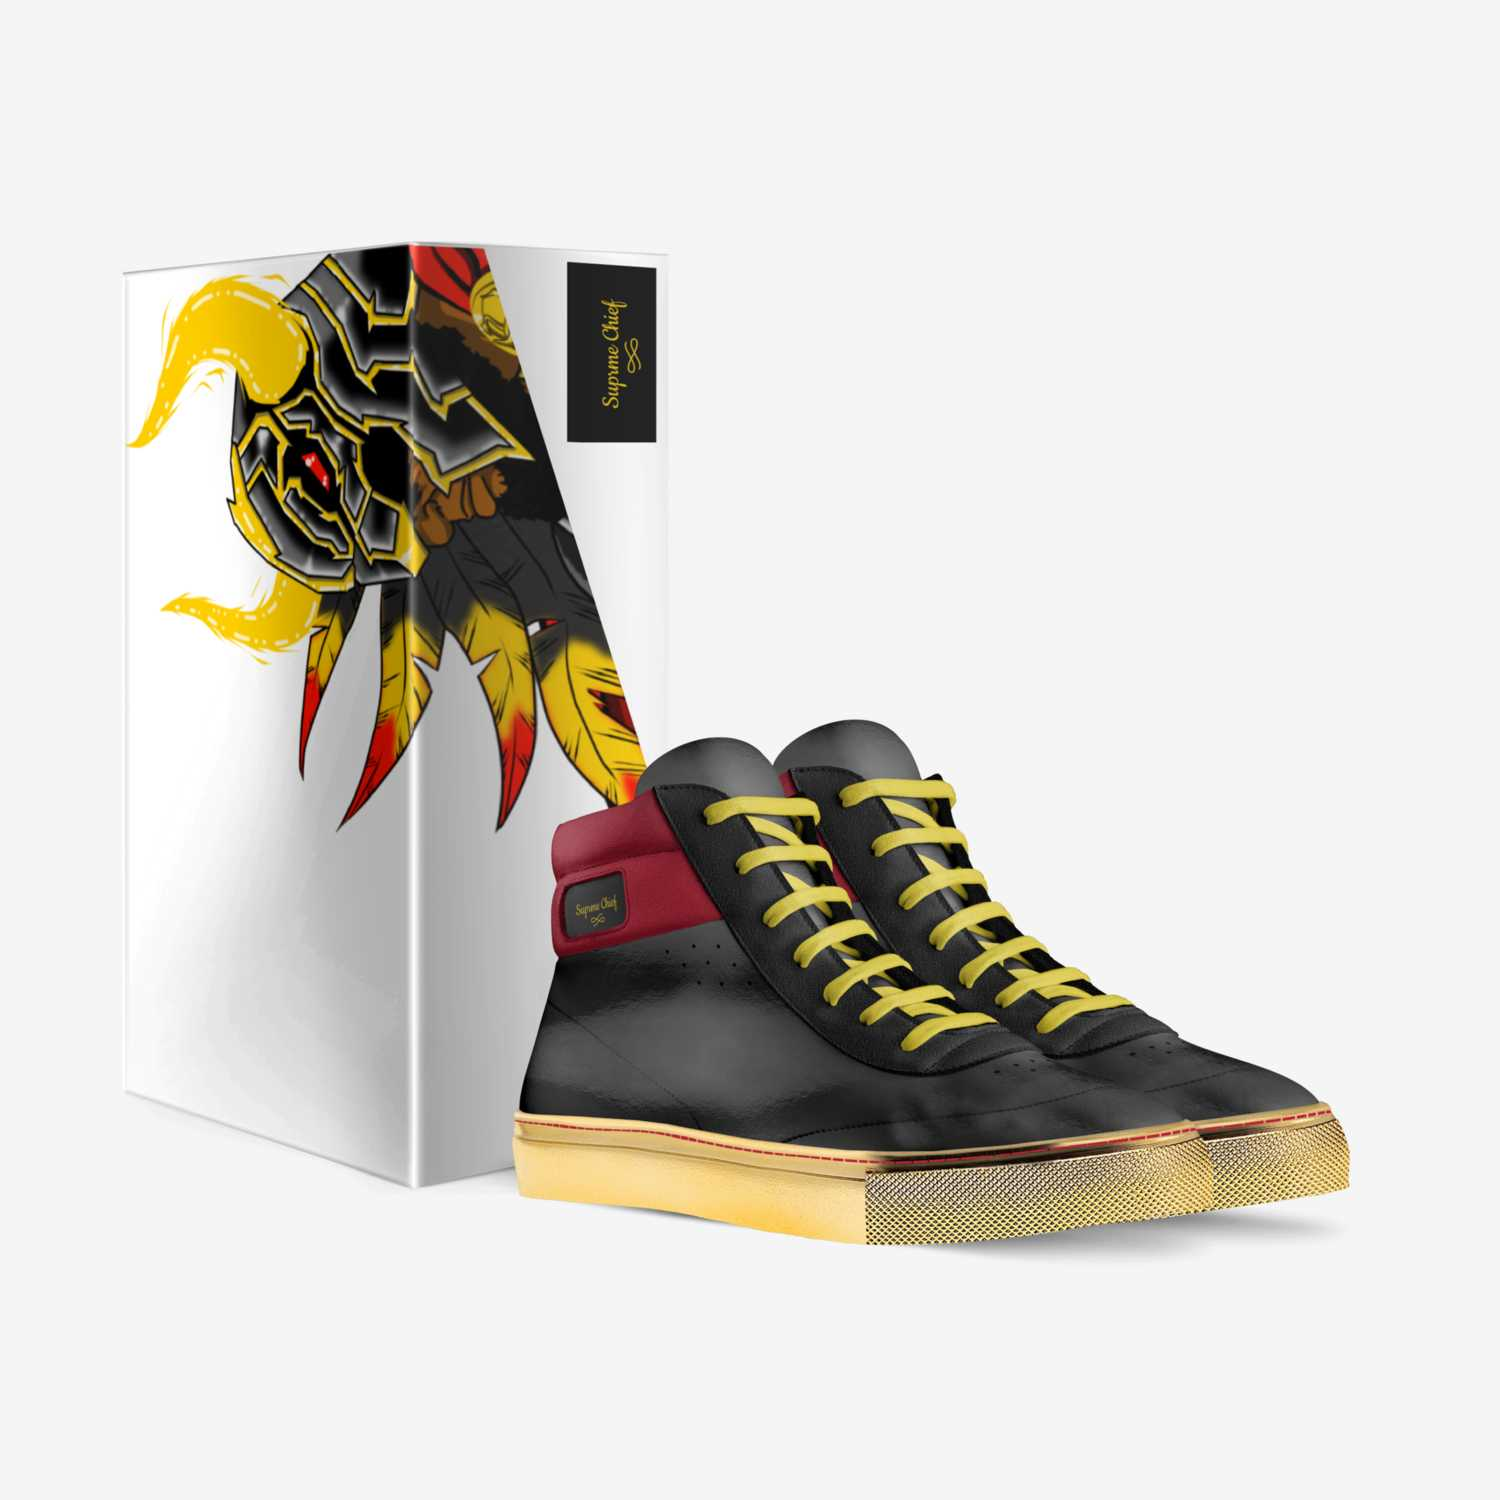 Suprme Chief custom made in Italy shoes by Morris Scales | Box view